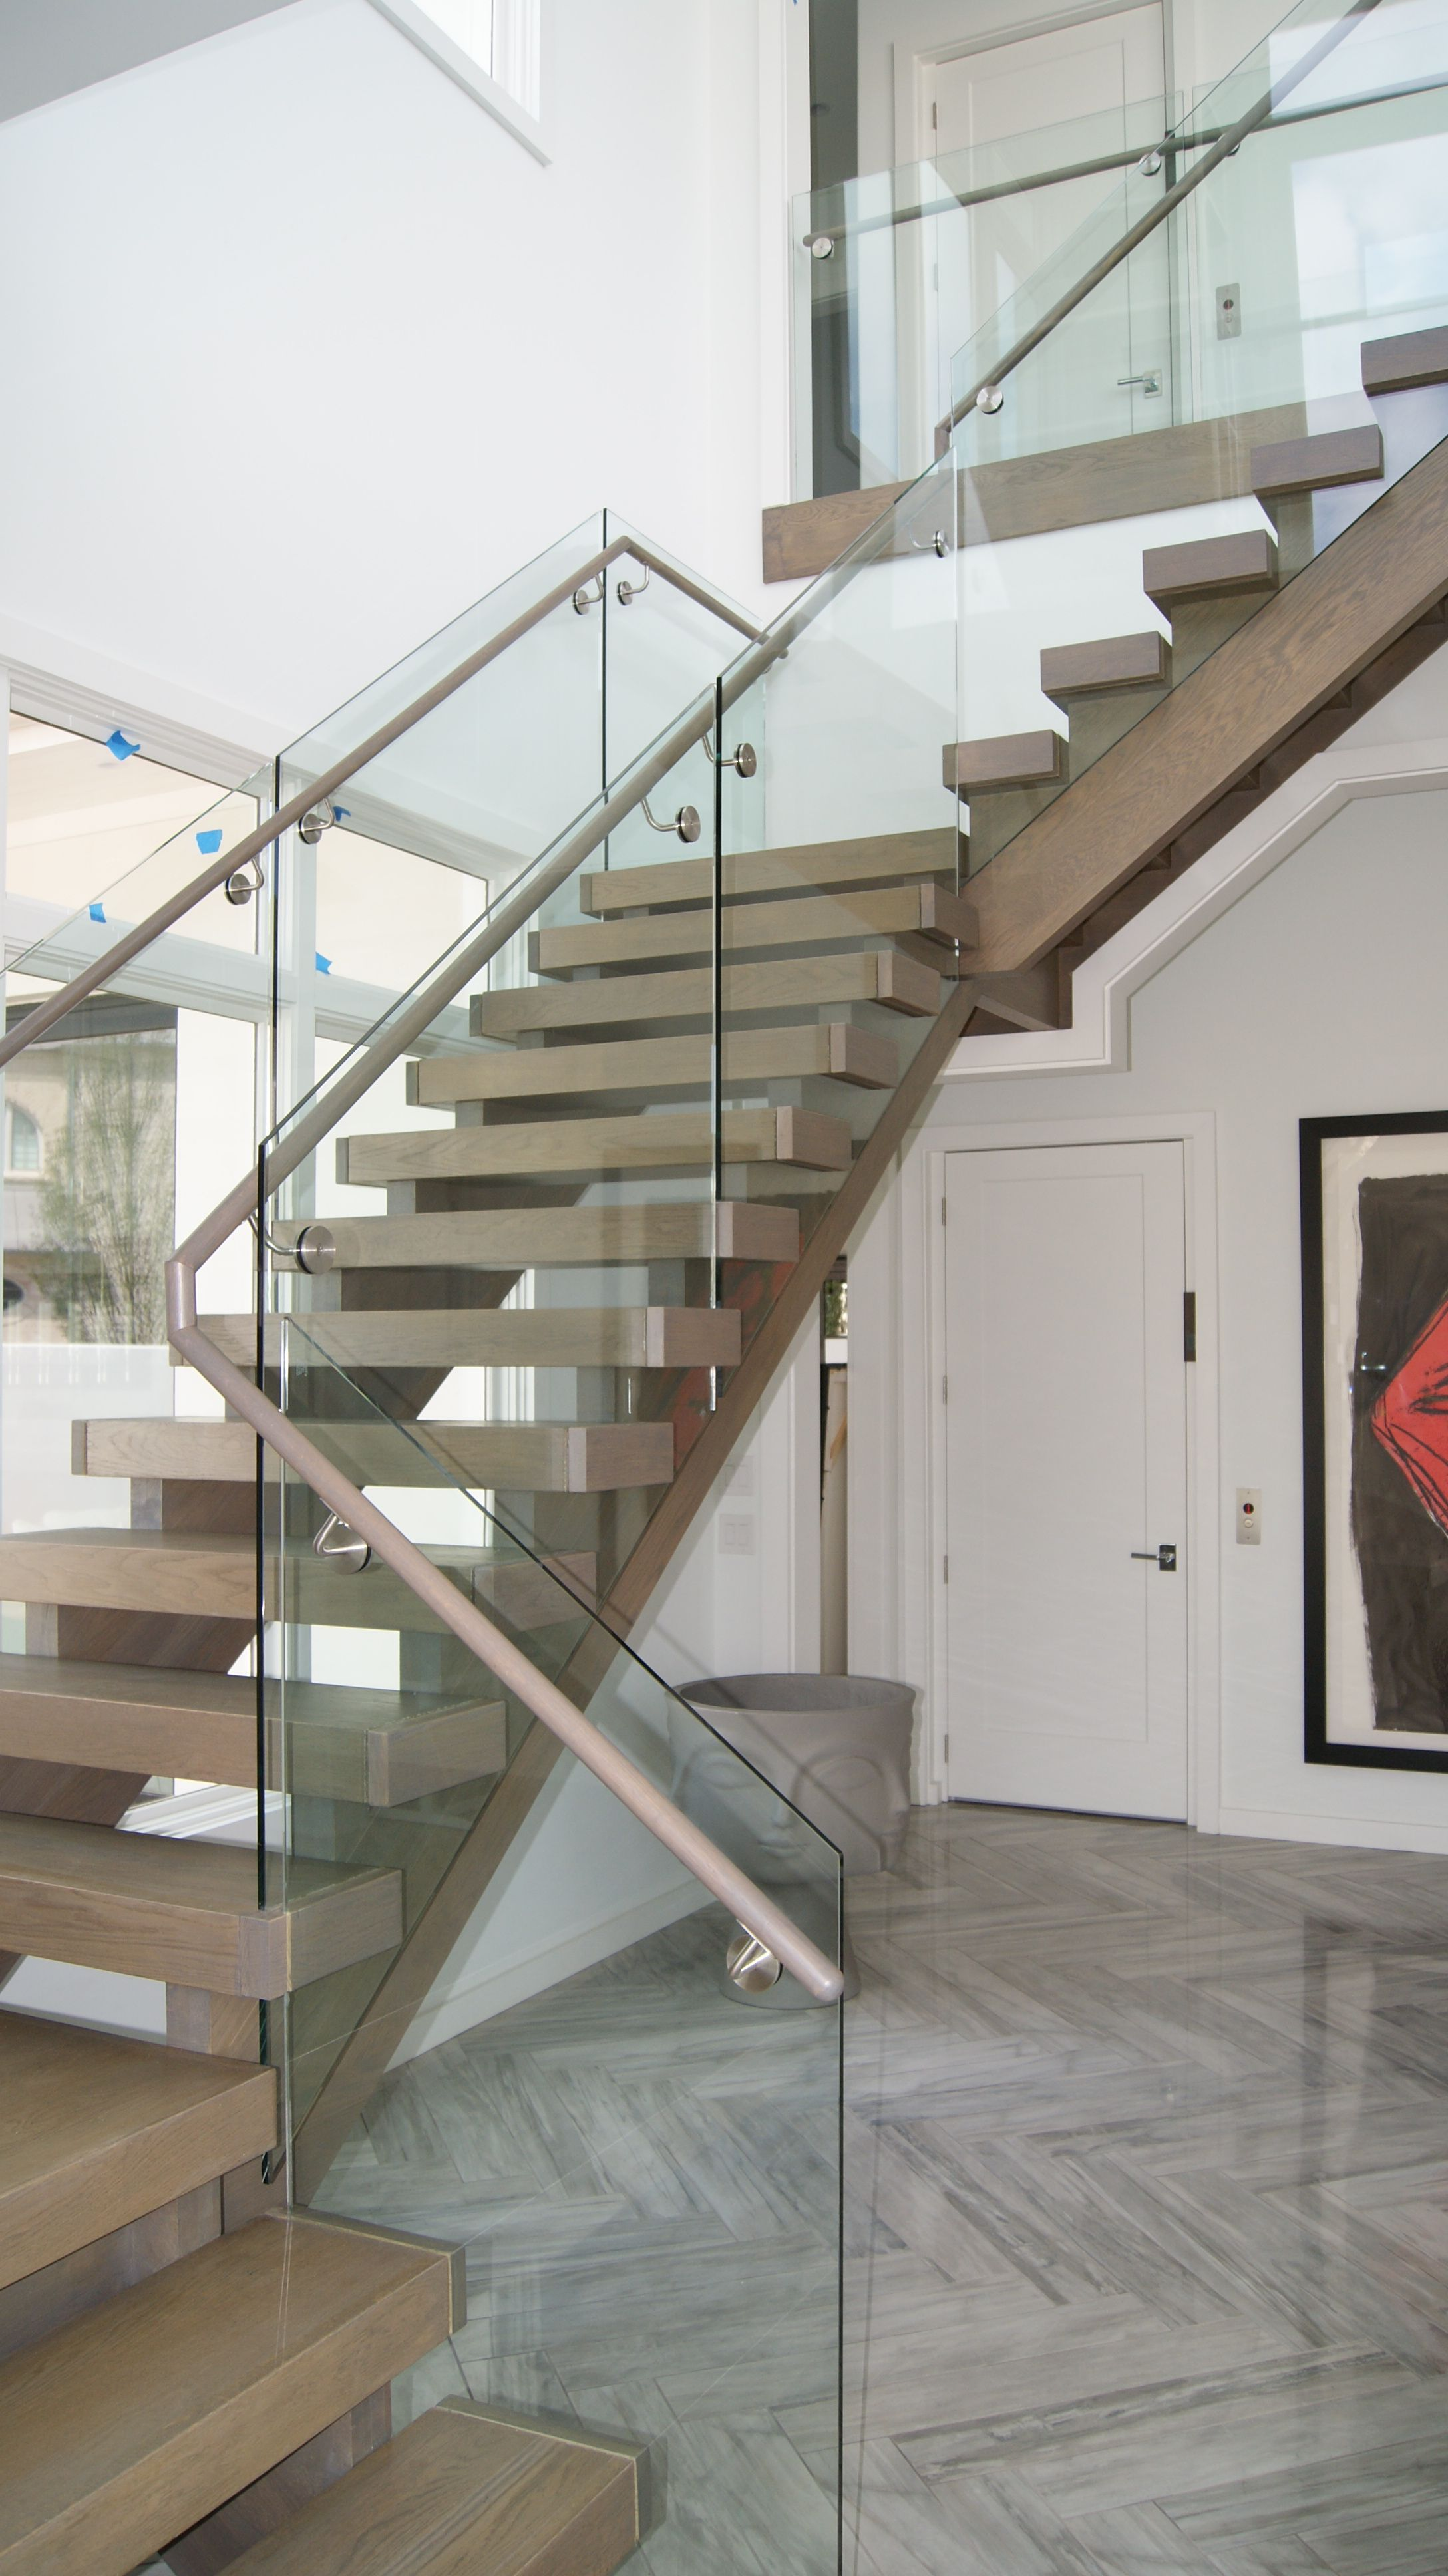 Vision Stairways And Millwork Is Georgiau0027s Premier Stair Company, Serving  The Entire State From Athens To Atlanta. We Sell Stair Parts, Both Custom  And ...